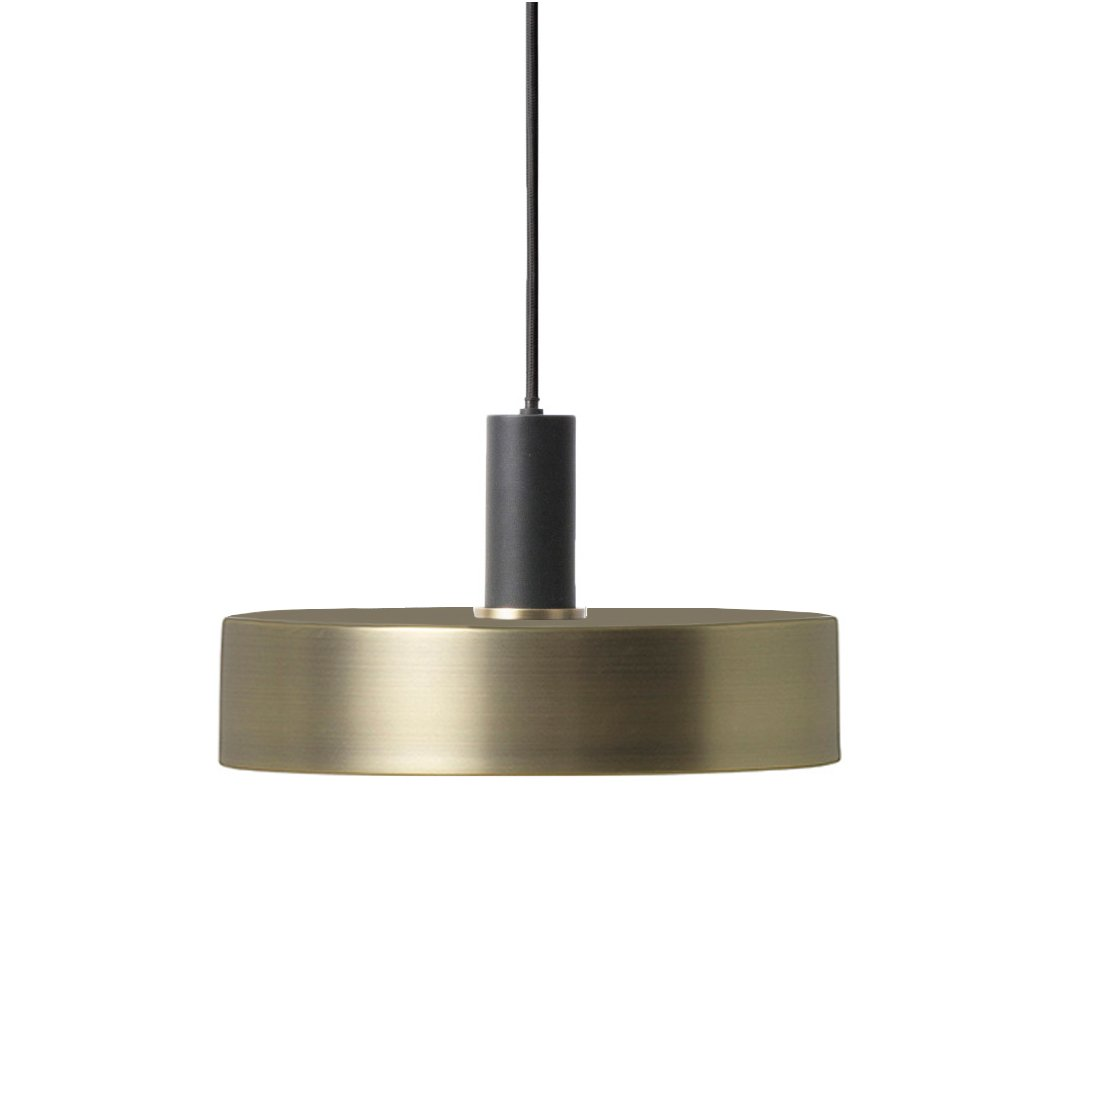 Ferm Living Collect Record Low Hanglamp Zwart Messing